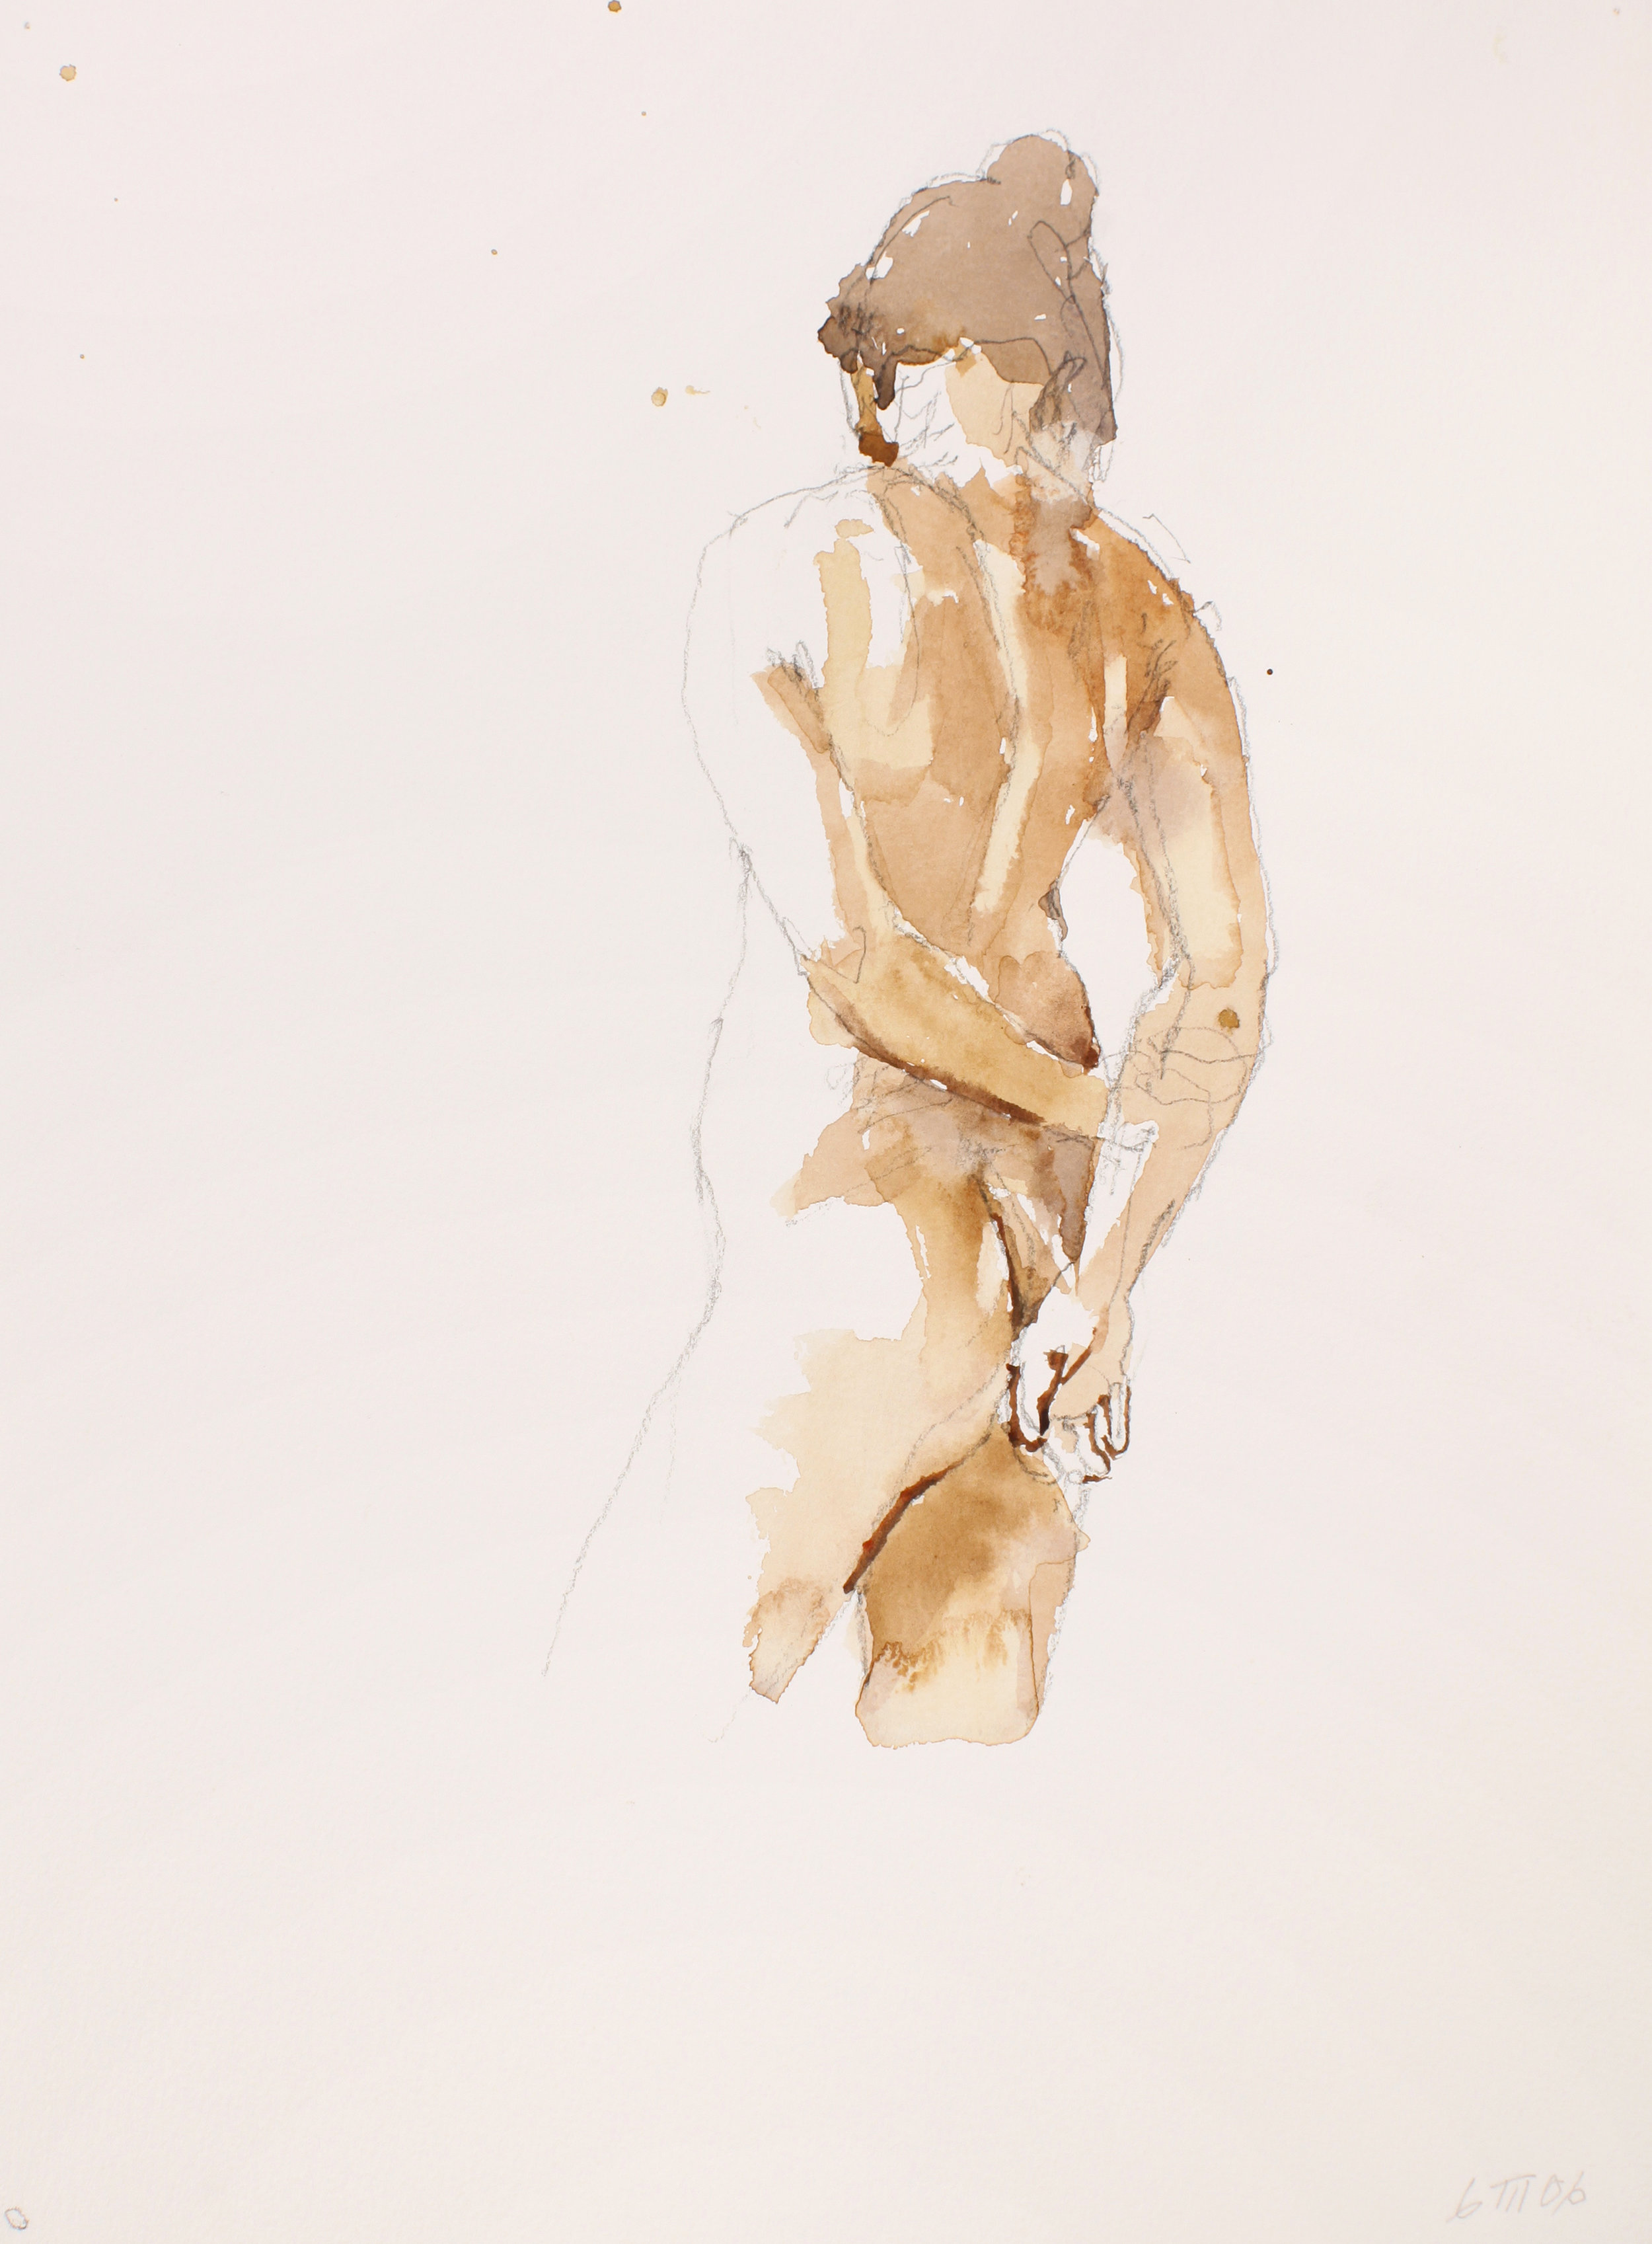 2006_Standing_Nude_with_Clasped_Hands_on_Back_watercolour_and_pencil_on_paper_15x11in_WPF223.jpg